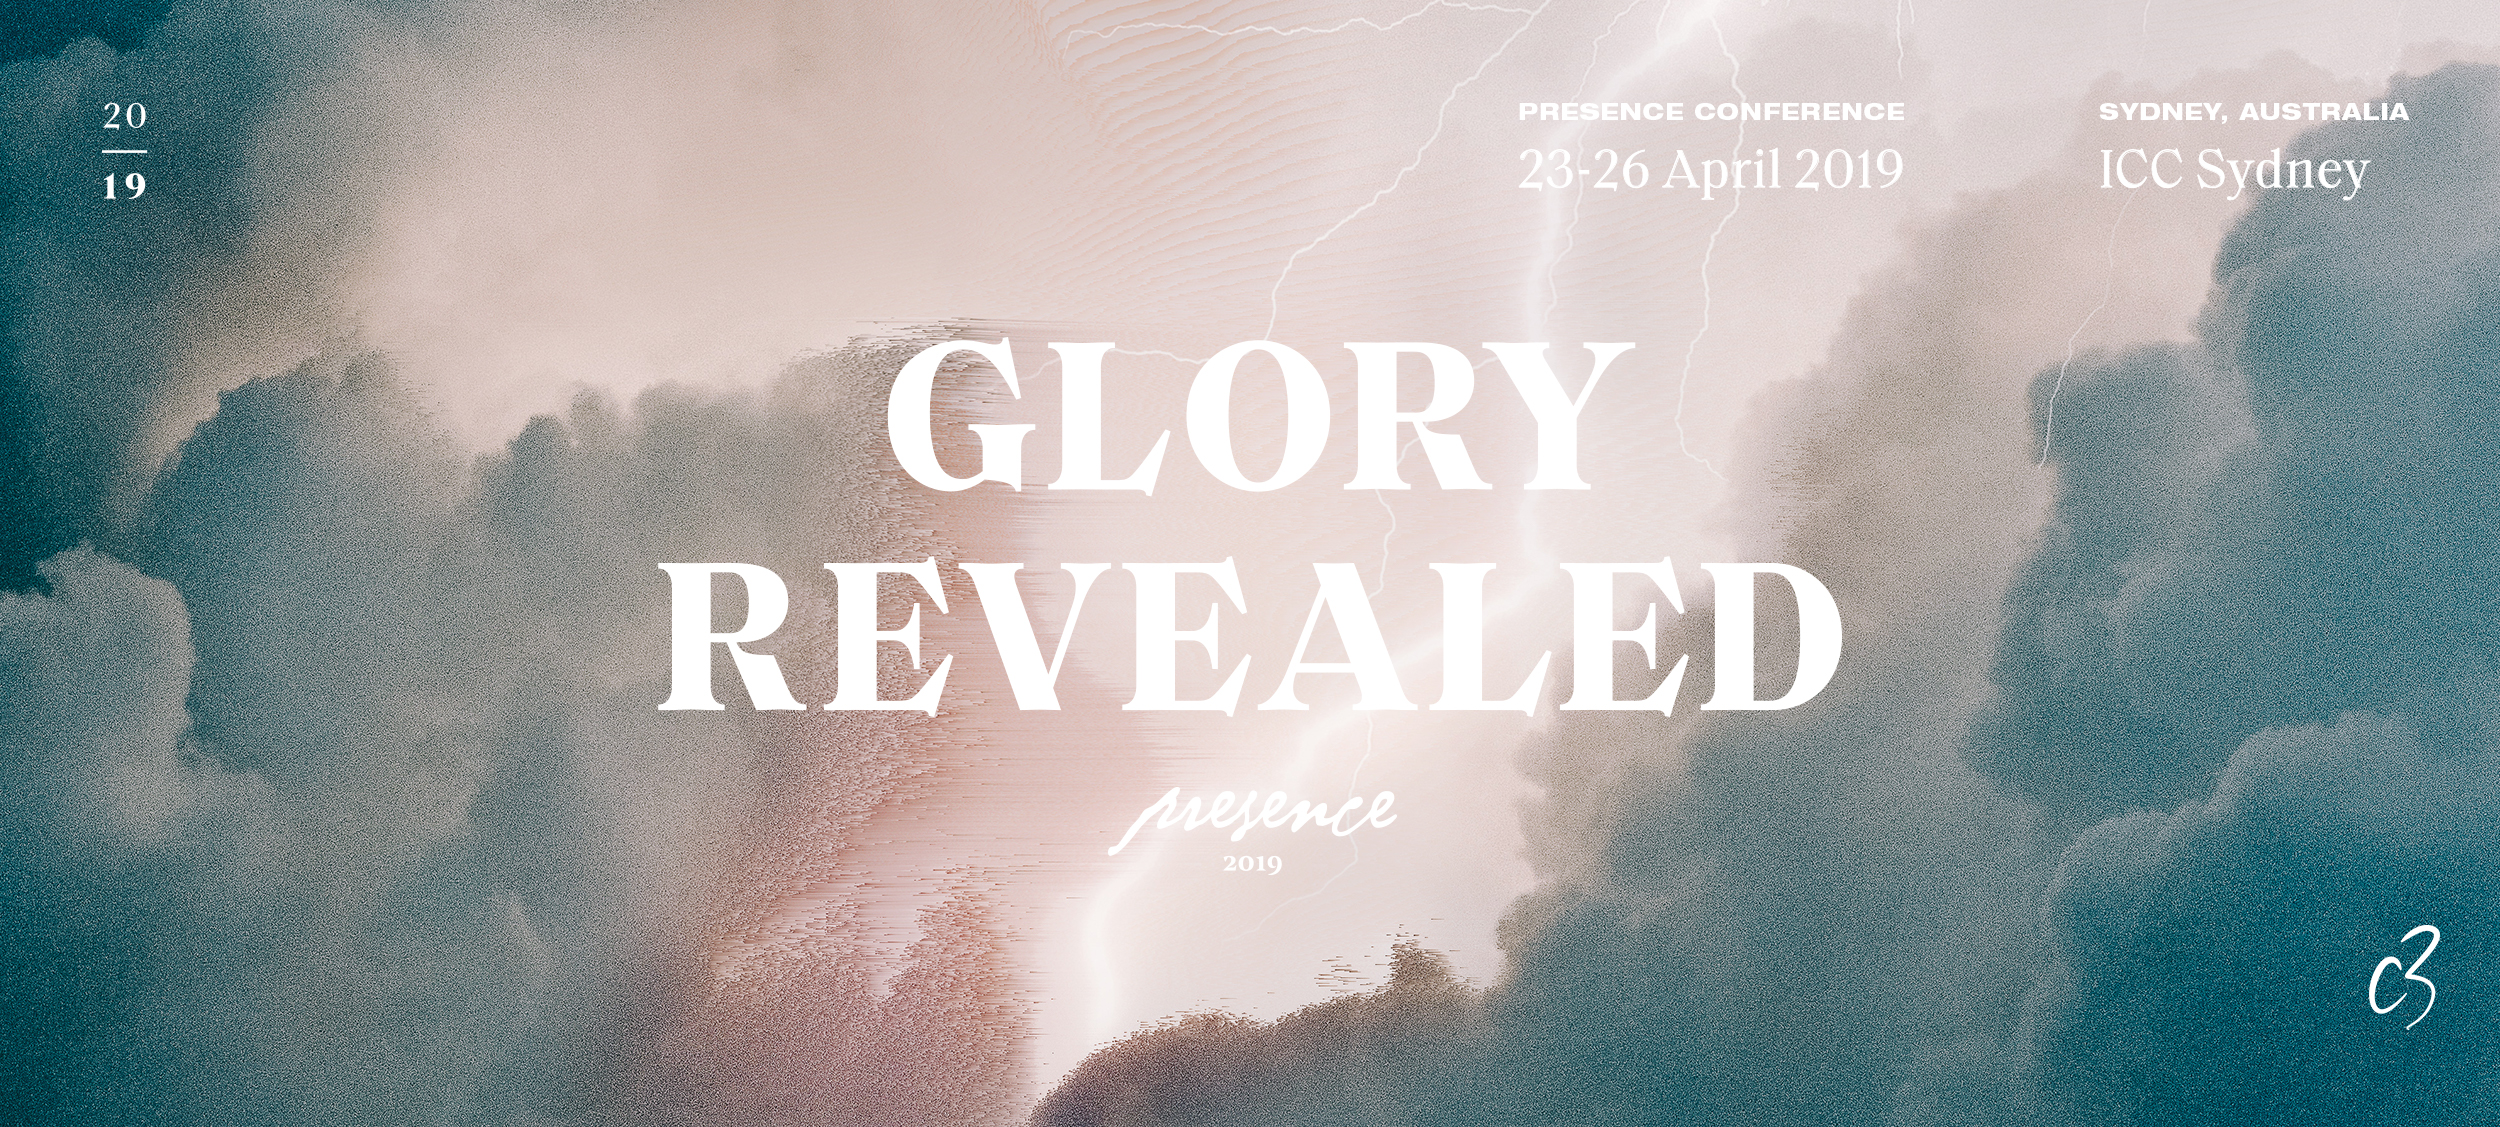 Website_Glory Revealed